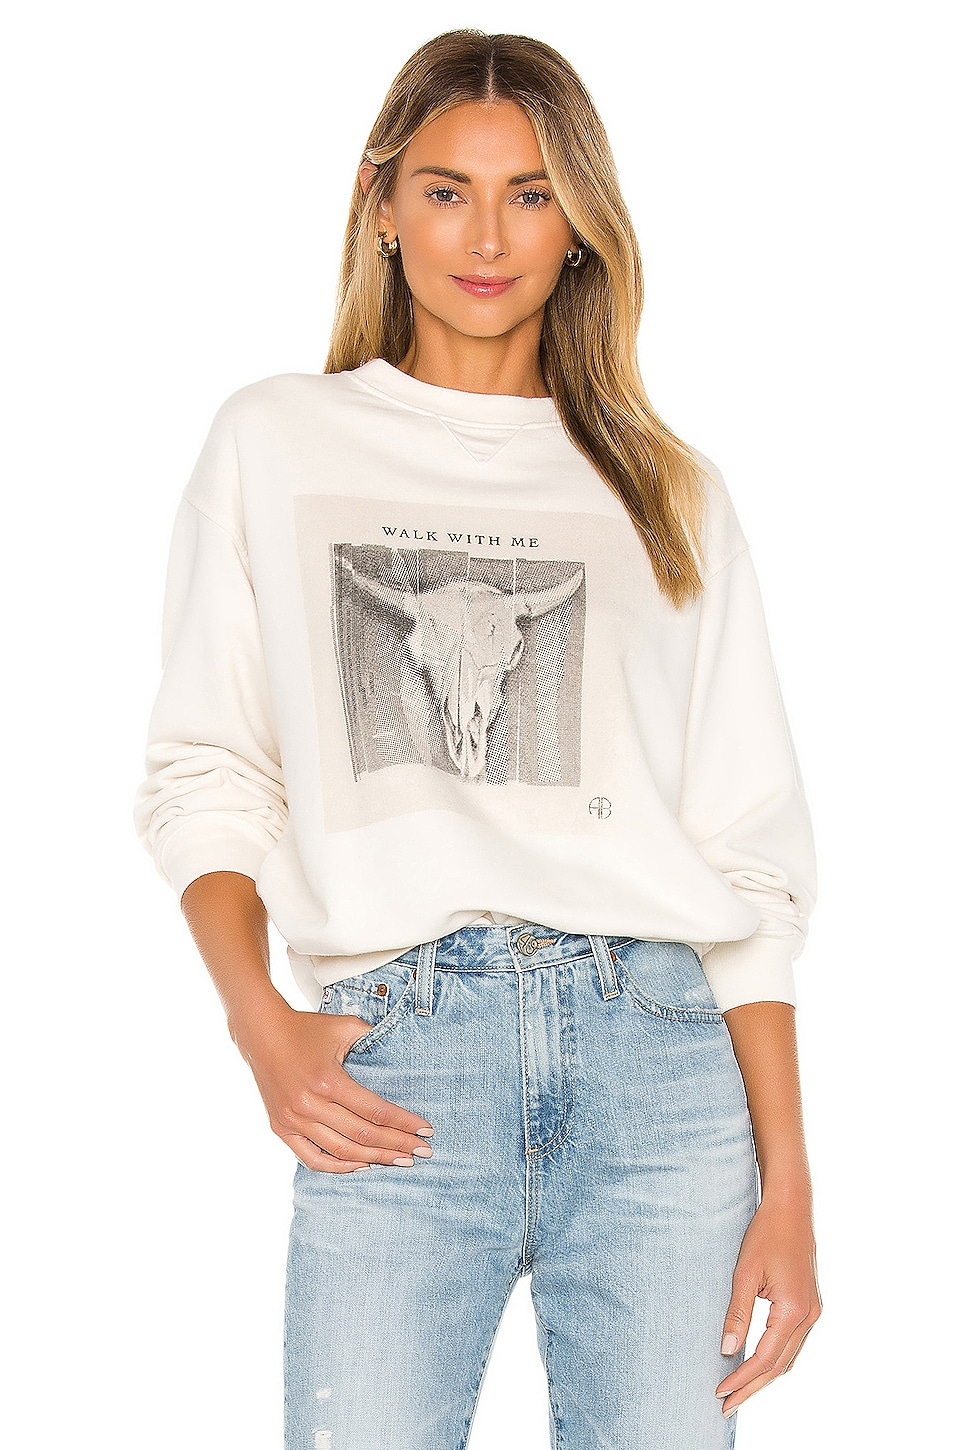 Ramona Walk With Me Sweatshirt             ANINE BING                                                                                                       CA$ 224.71 7